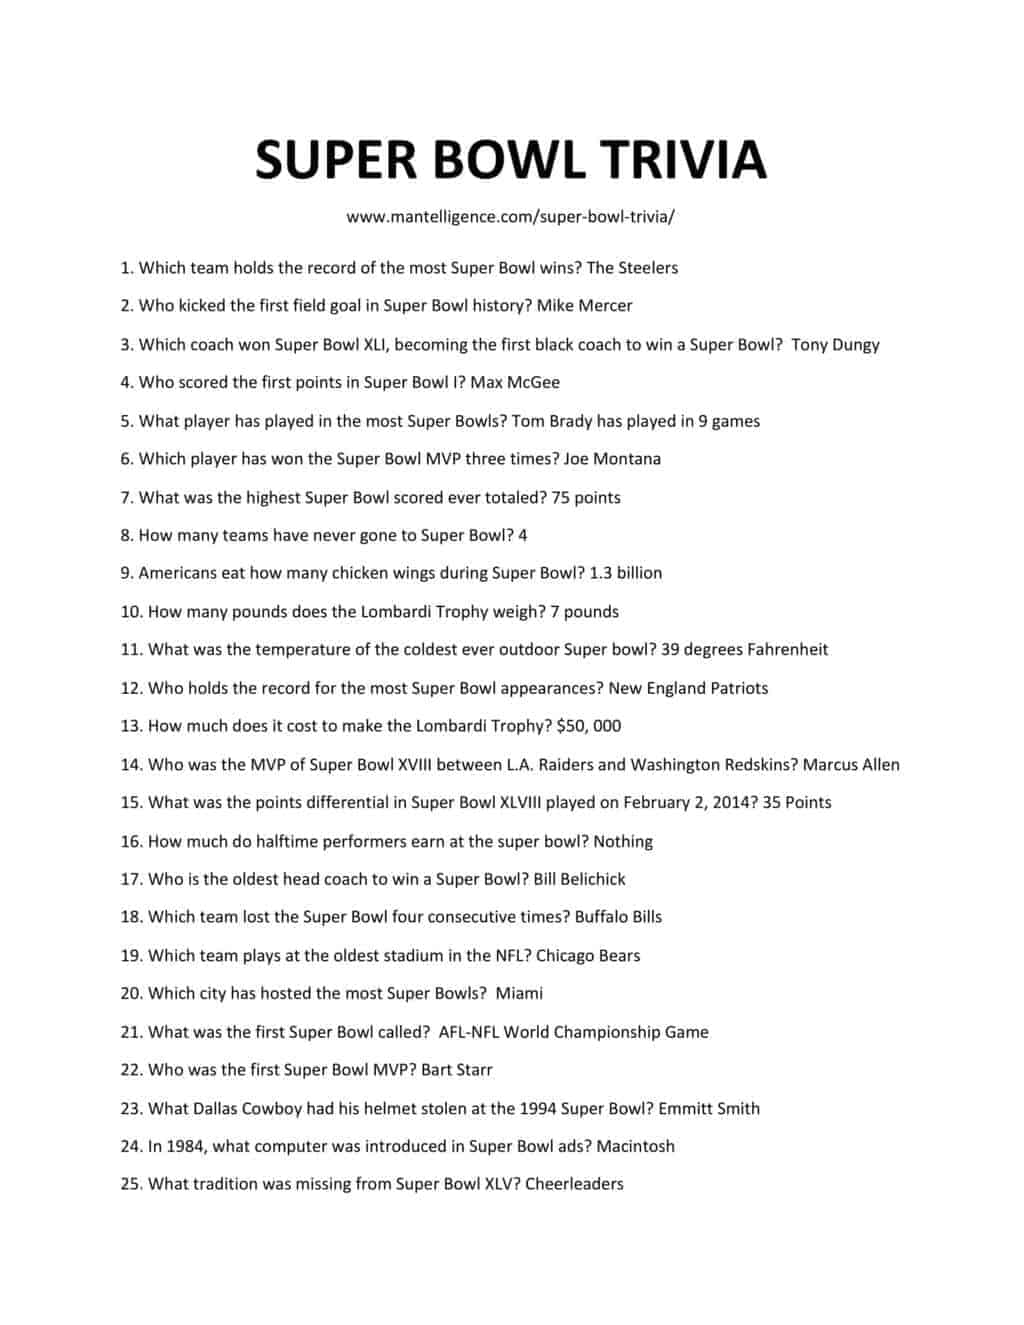 Downloadable and printable list of super bow trivia as jpg or pdf